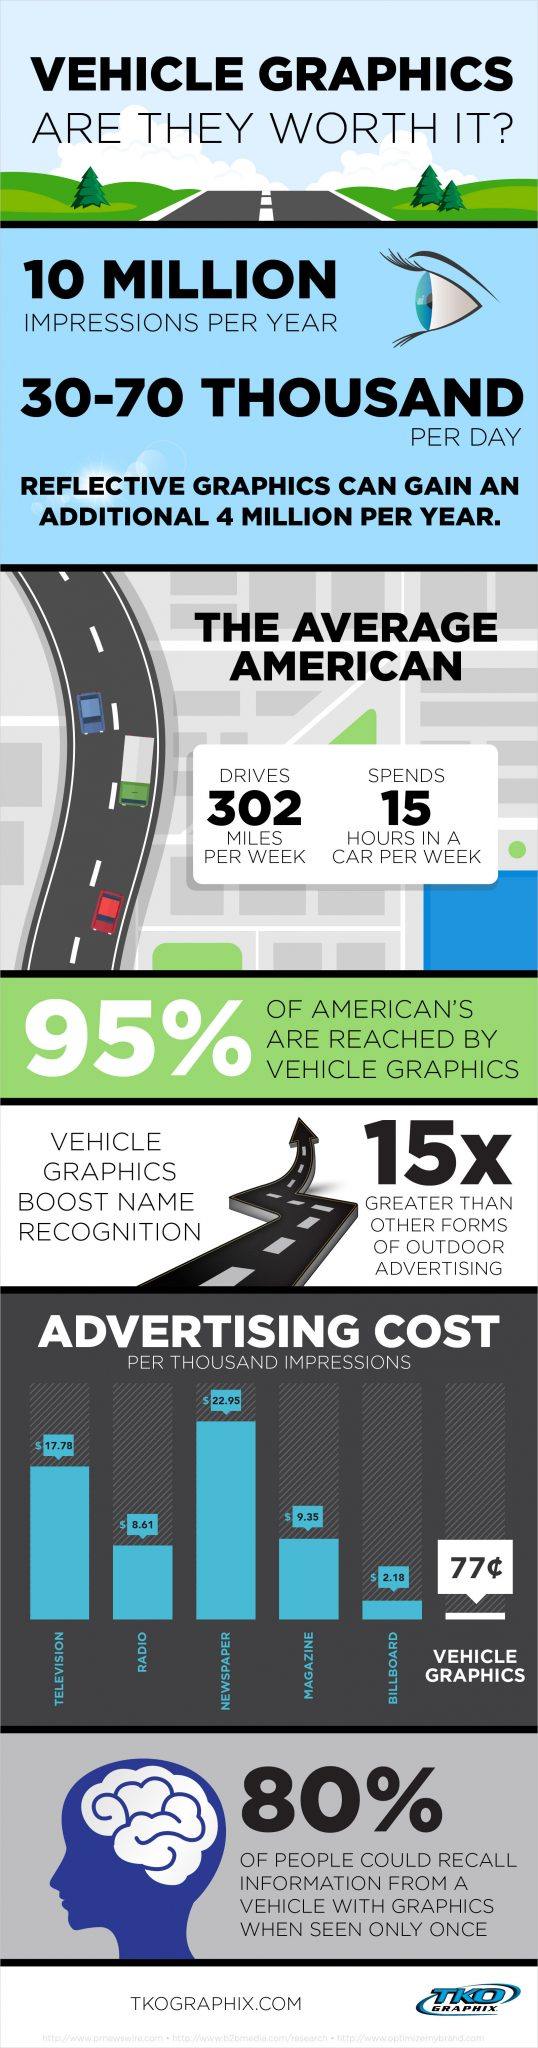 vehicle_graphics_infographic_statistics_by_TKO-Graphix